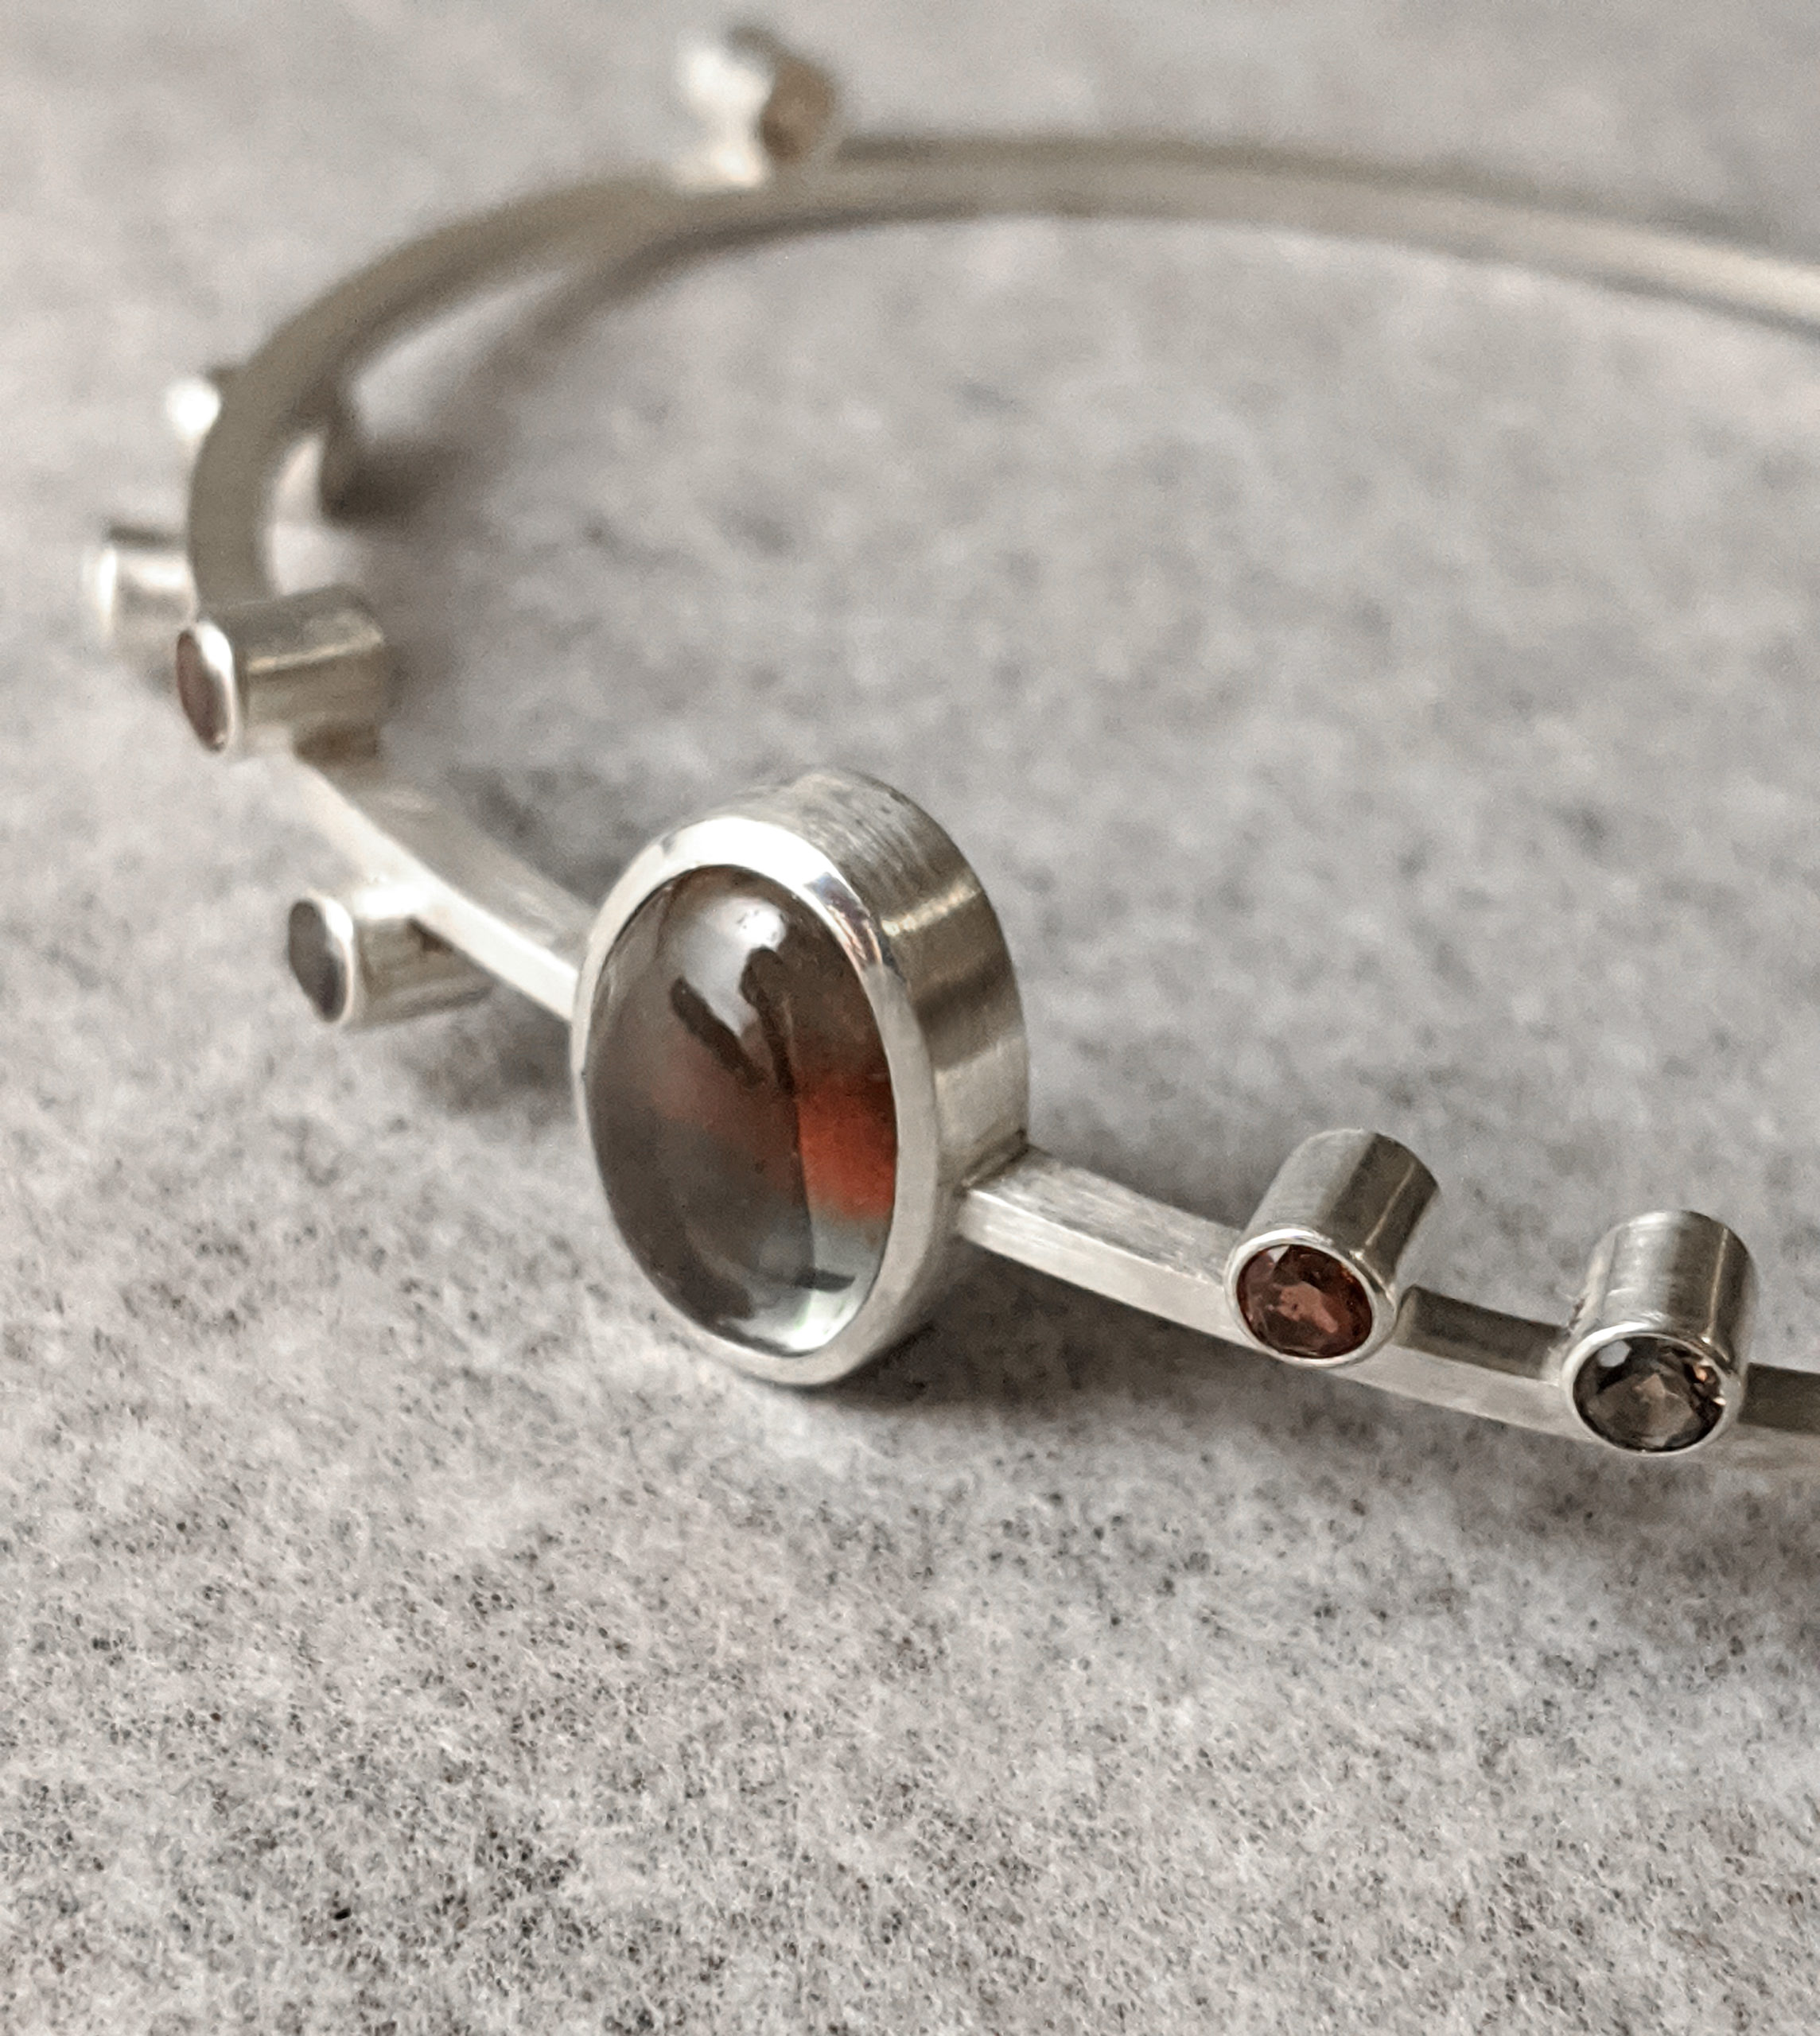 Oval Bangle Bracelet in Silver with Red and Green Oregon Sunstone Cabochon and Multi-colored Sunstones